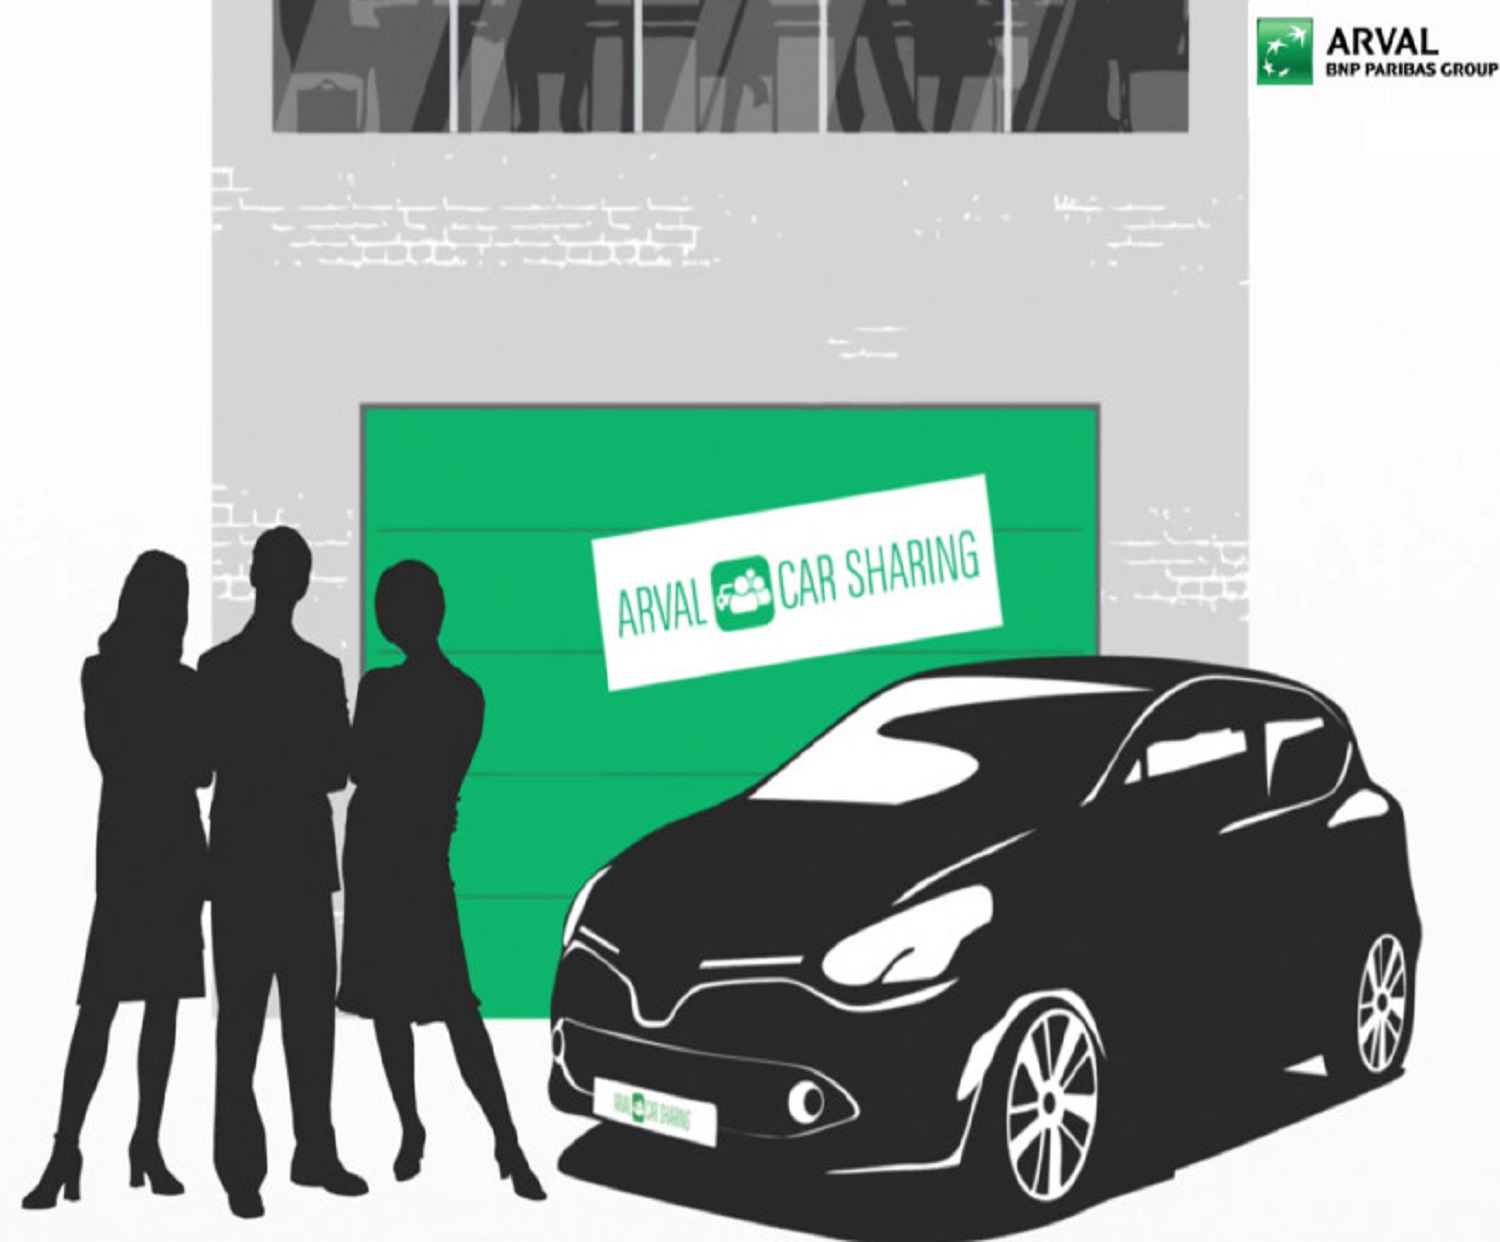 Arval_car_sharing_aziendale_2